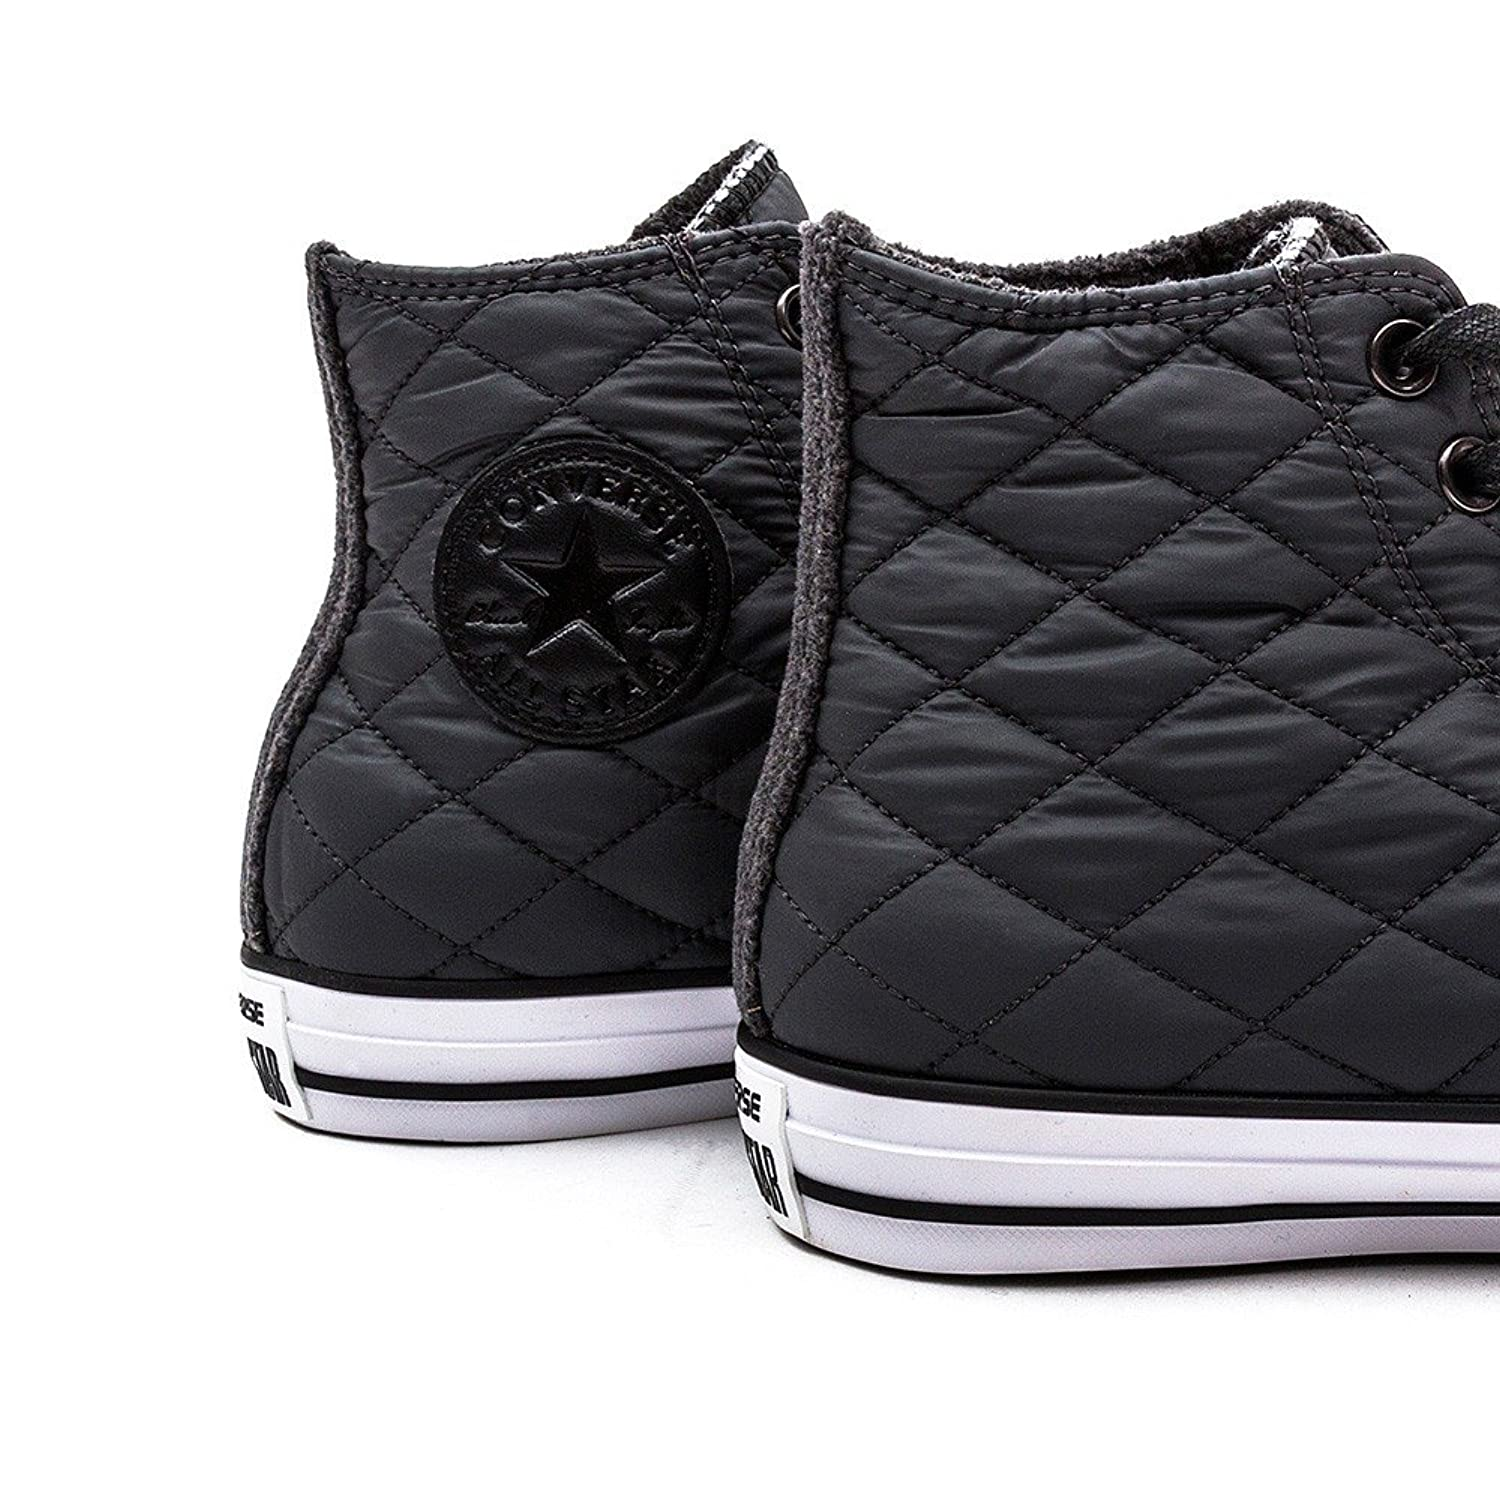 unisex normal converse casual product ox lyst line from white quilt shoes whiteblackwhite taylor gallery quilted chuck nylon finish sneakers